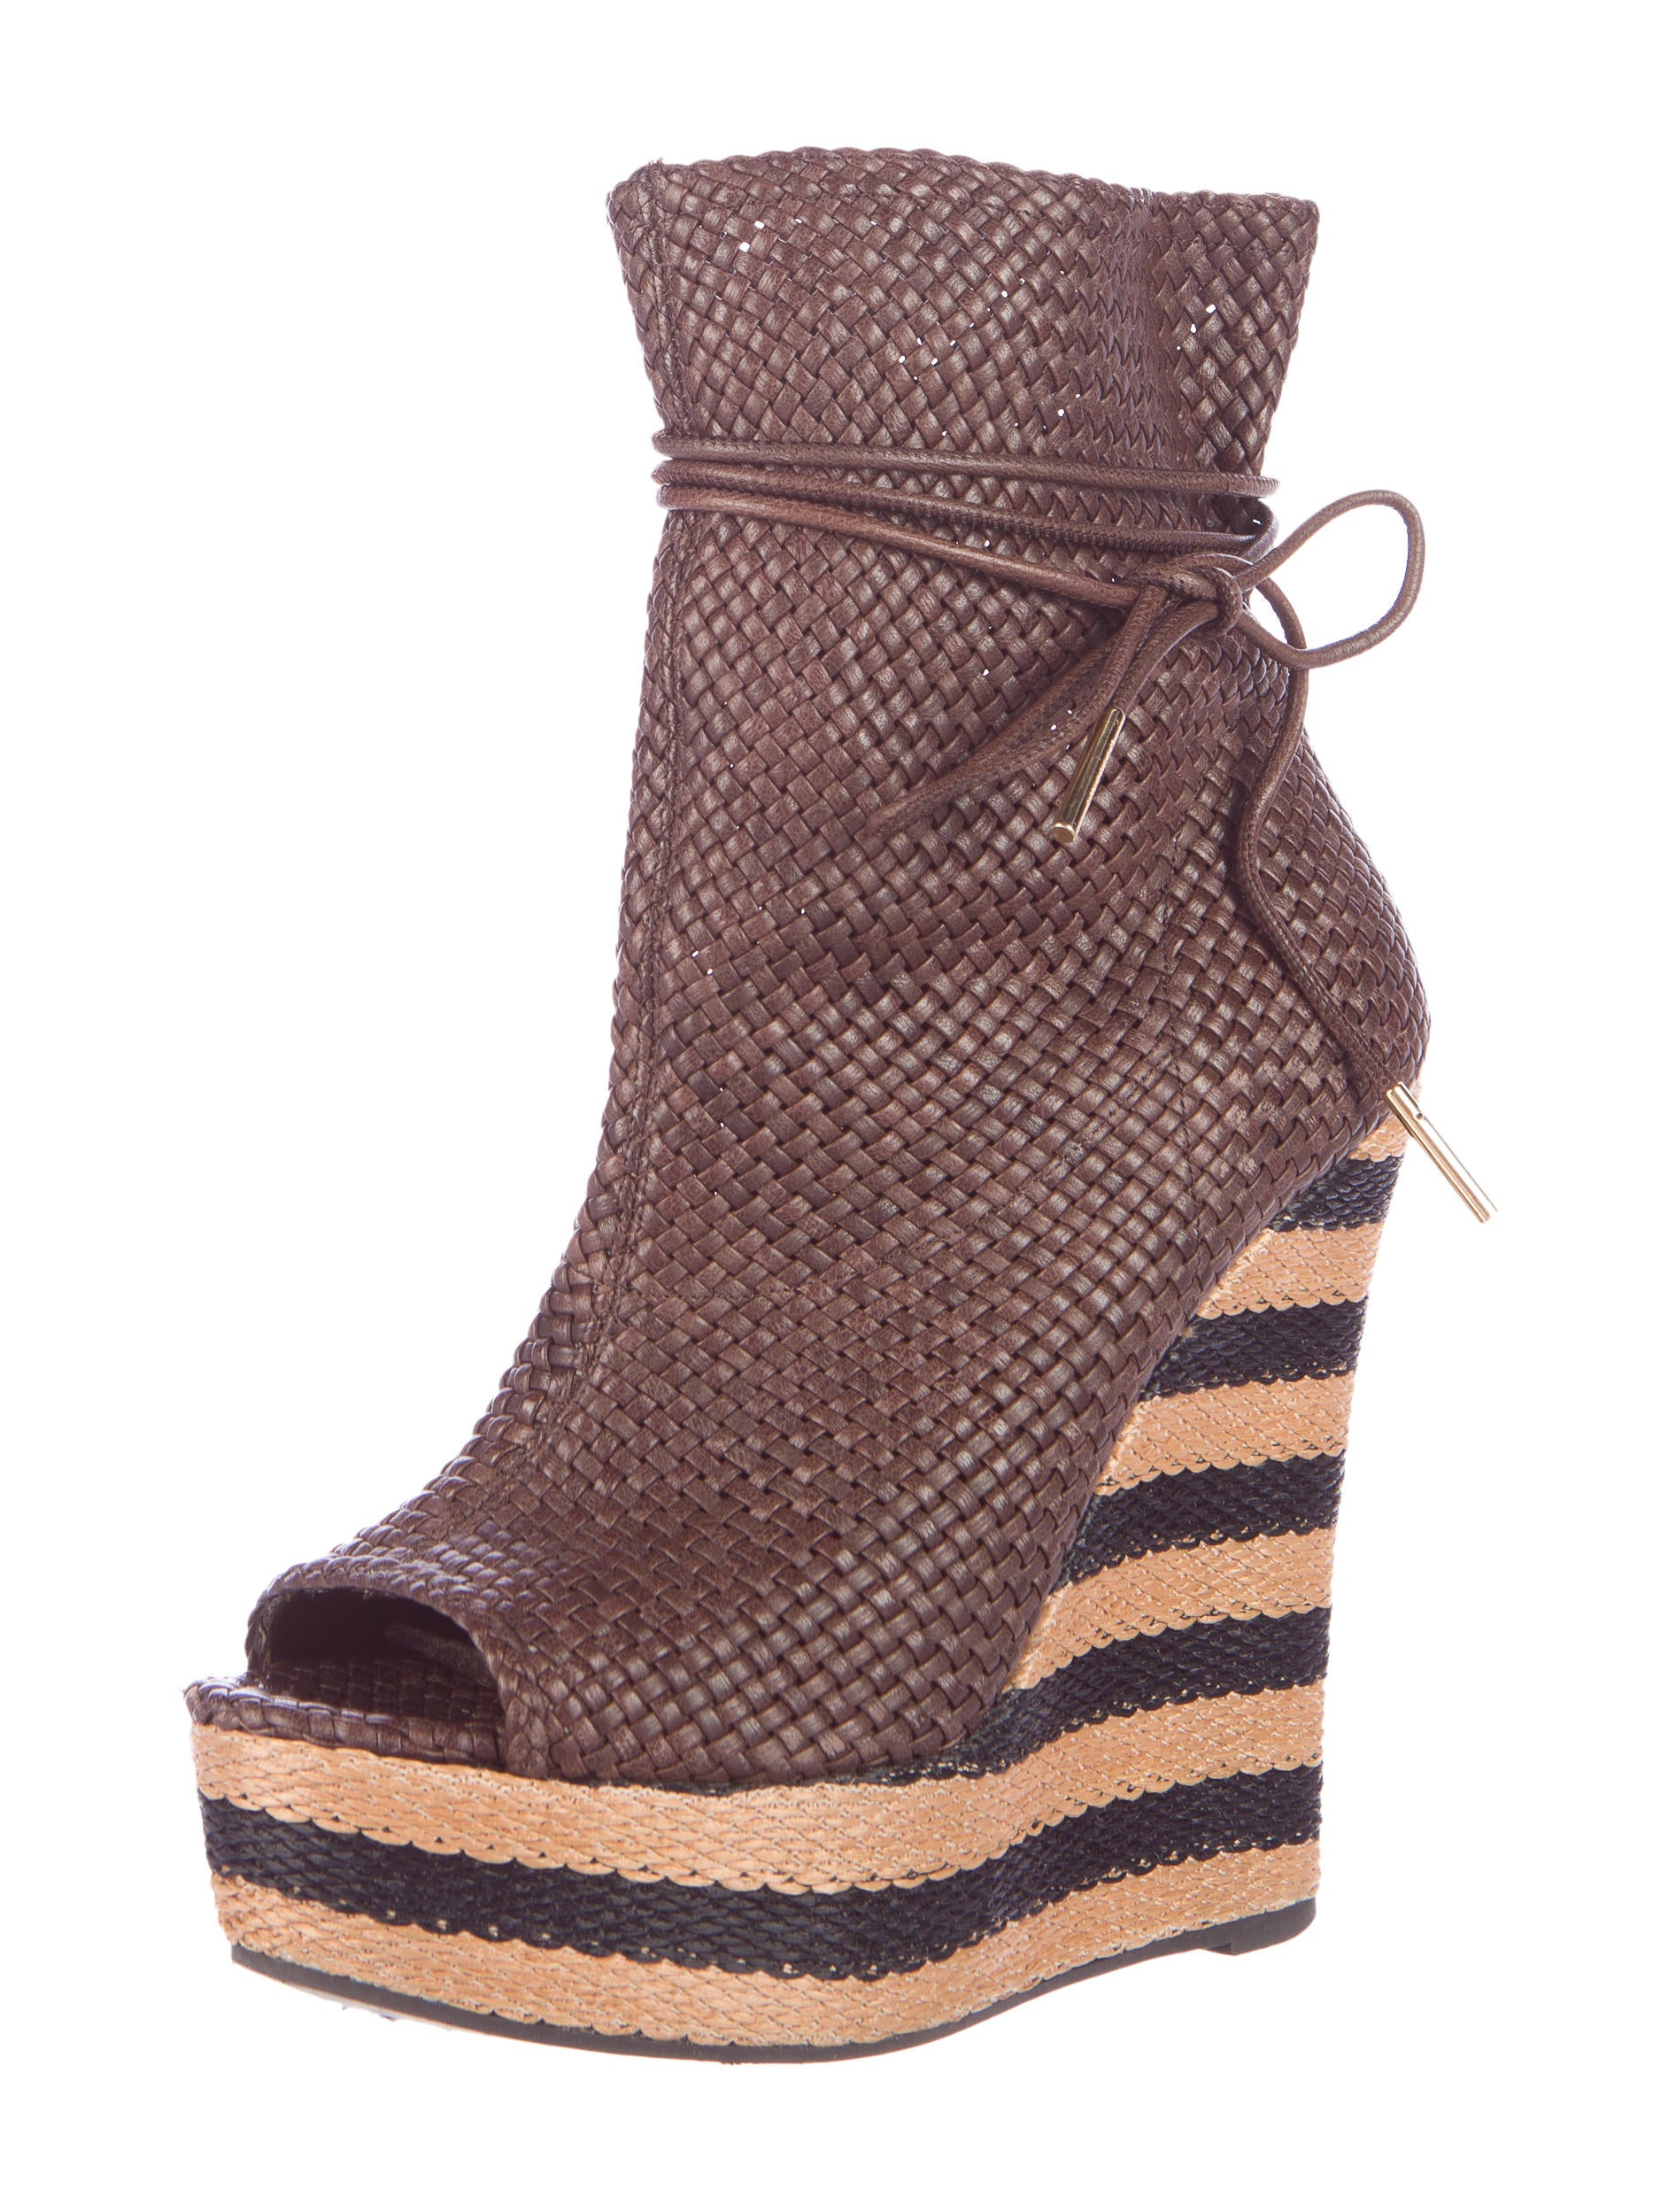 burberry woven wedge ankle boots shoes bur58053 the